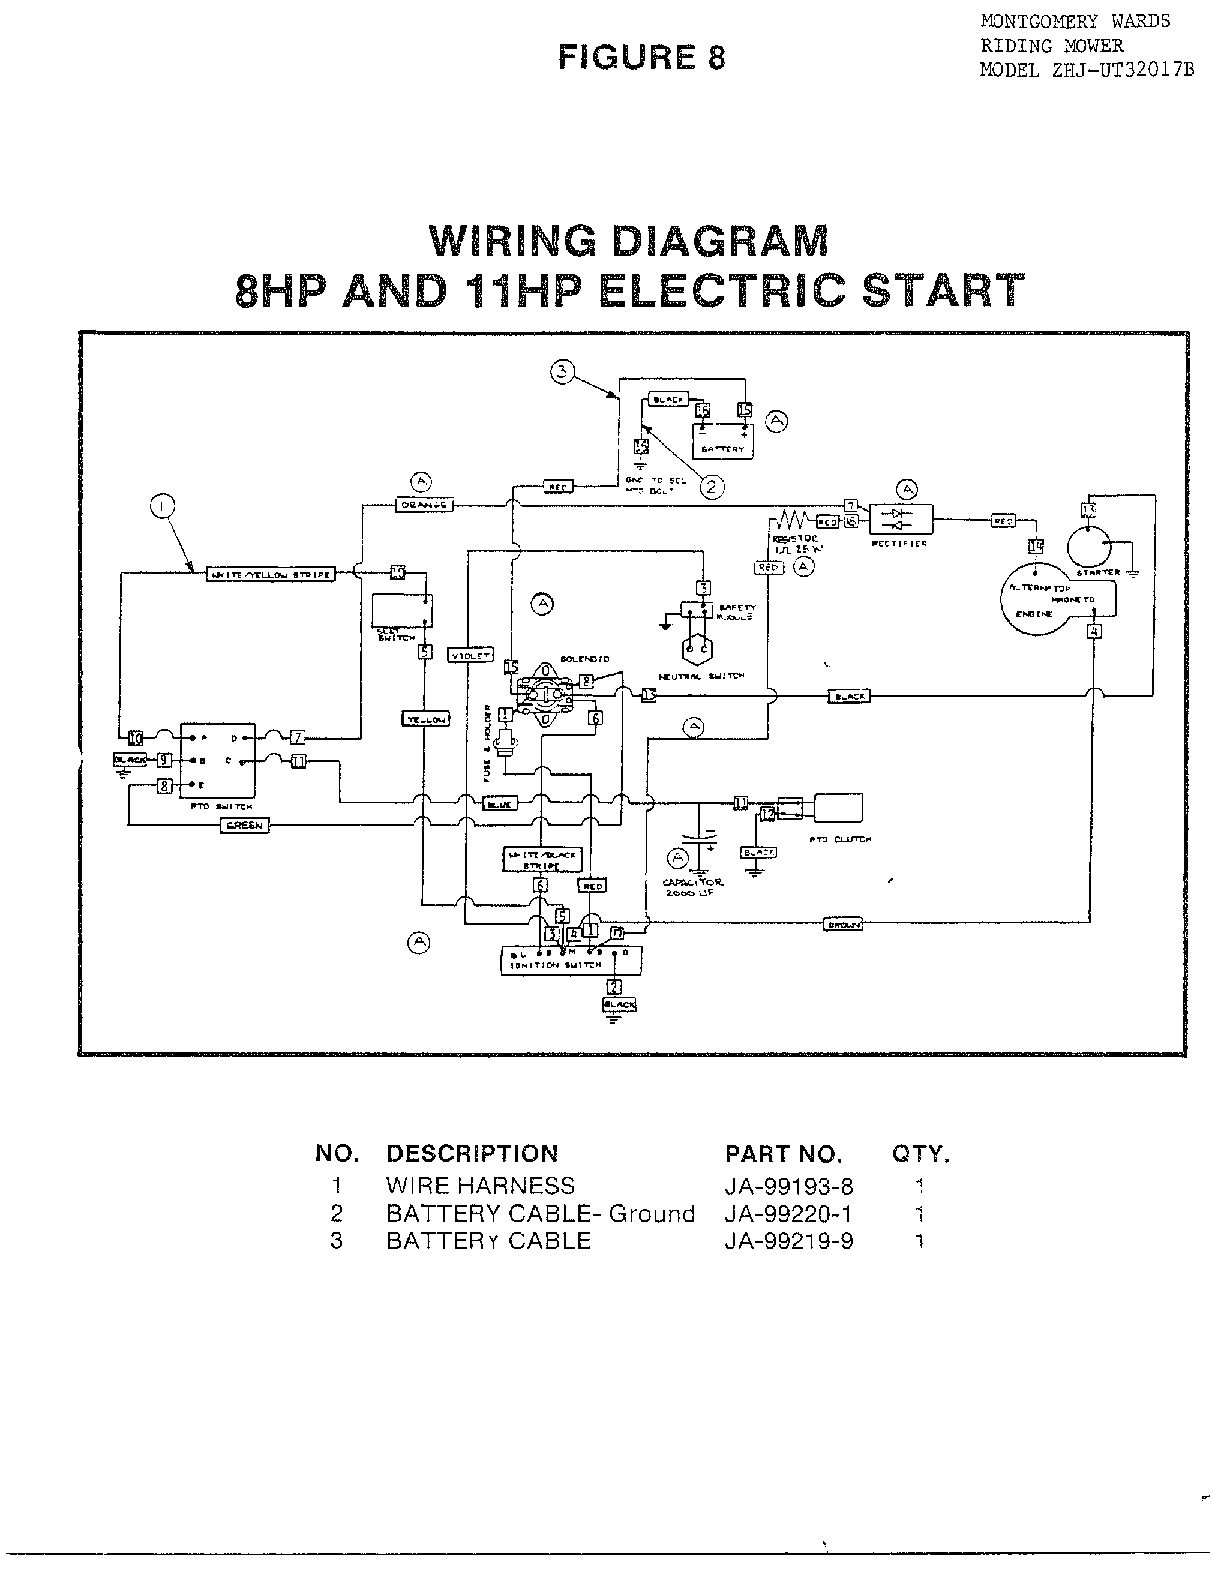 Superwinch Solenoid Wiring Diagram Will Be A Thing X3 Briggs And Stratton 11 Hp Best Site Harness Warn Winch Smittybilt